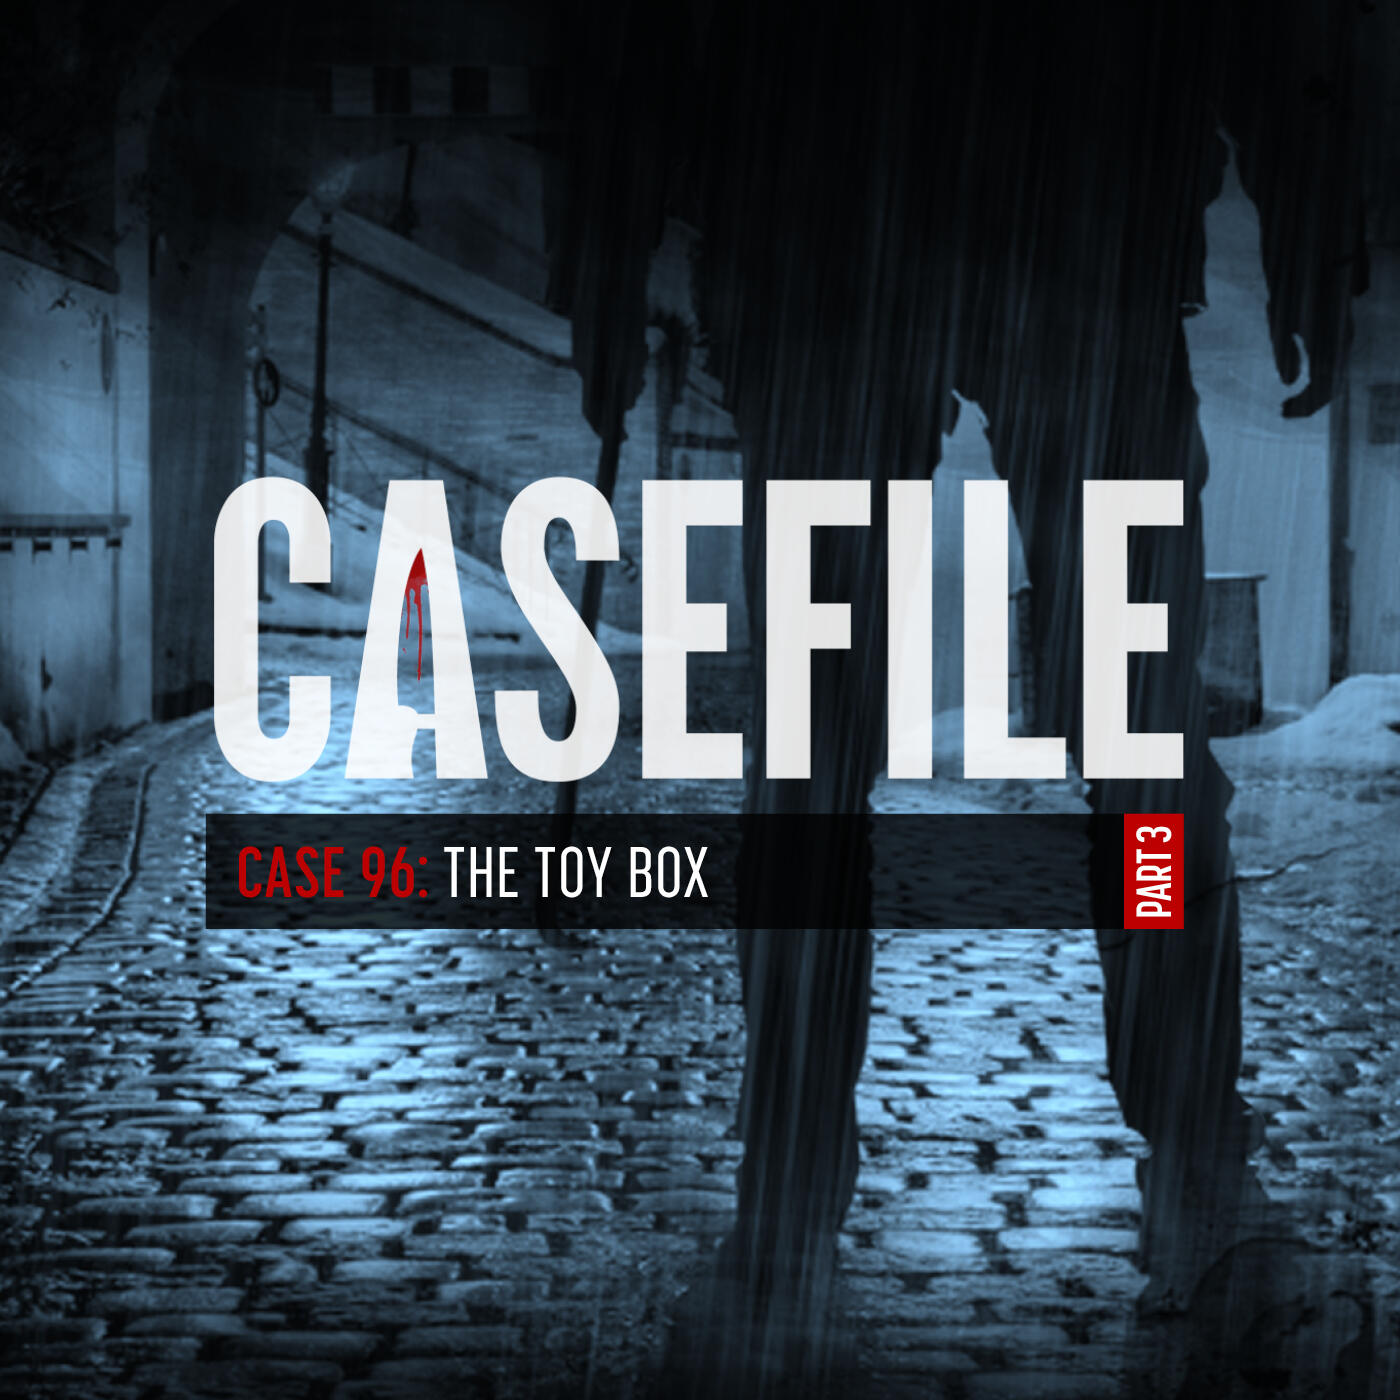 Case 96: The Toy Box (Part 3)